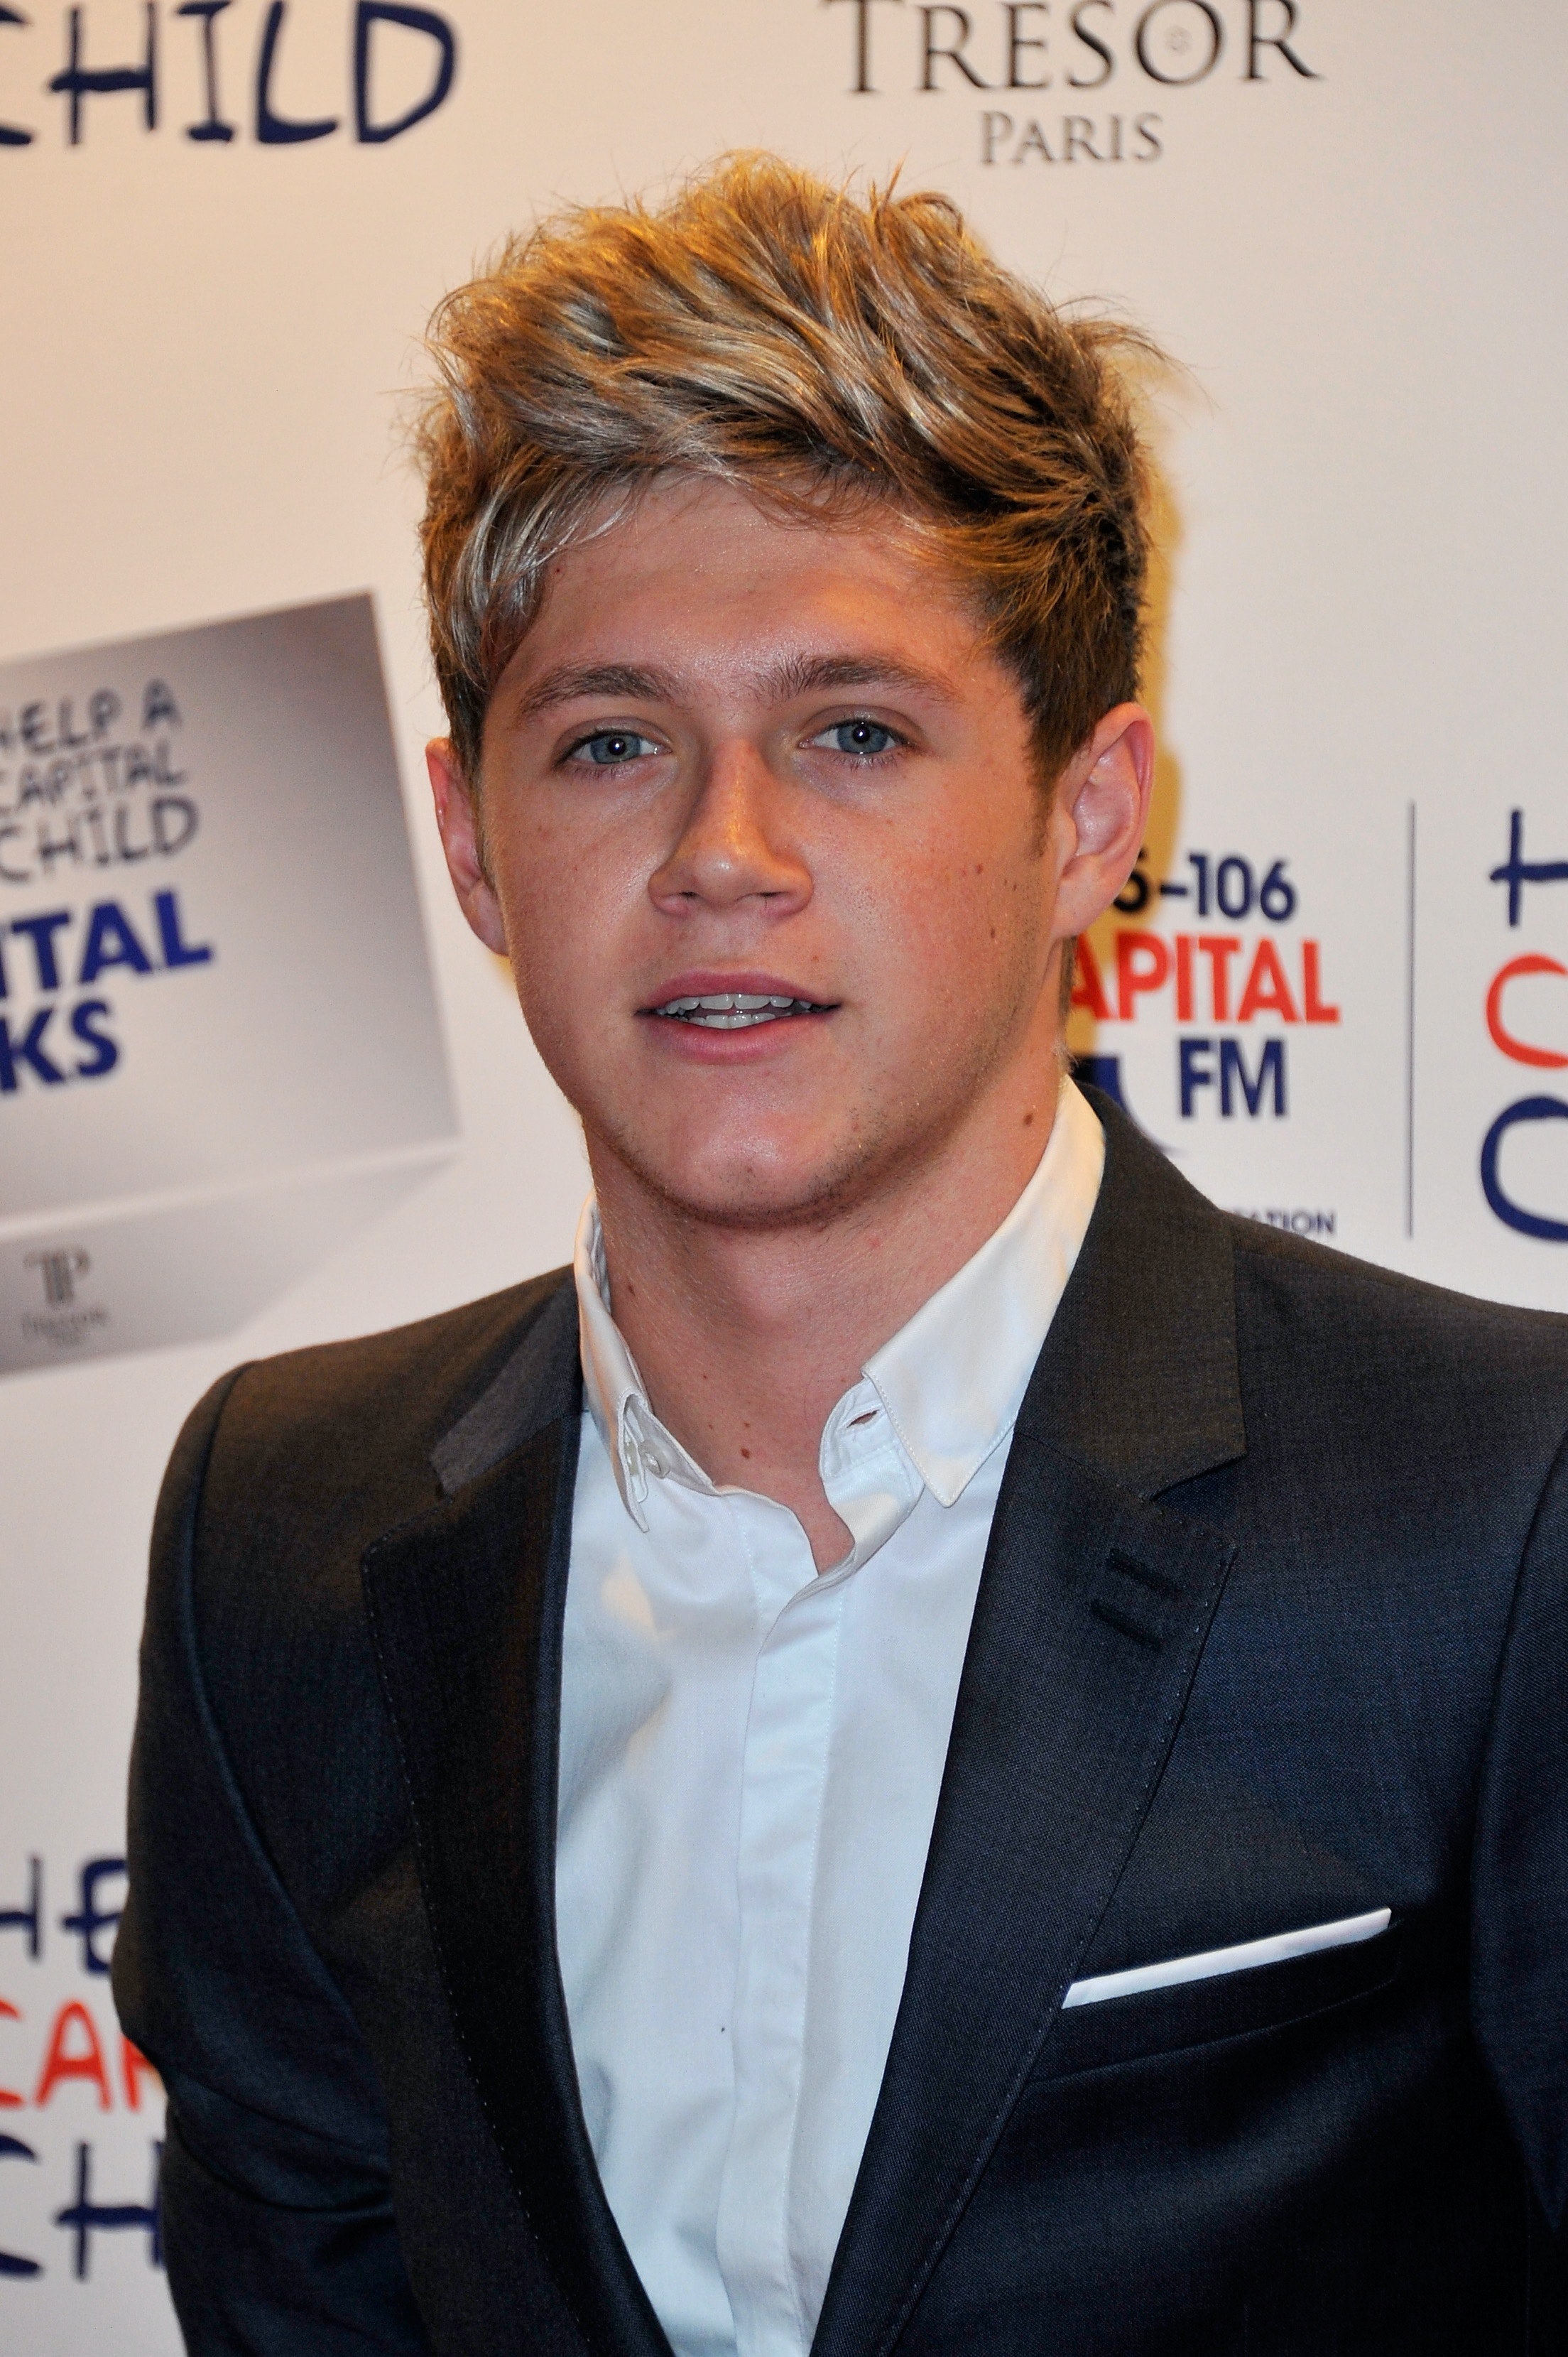 Niall horan facts about dating websites